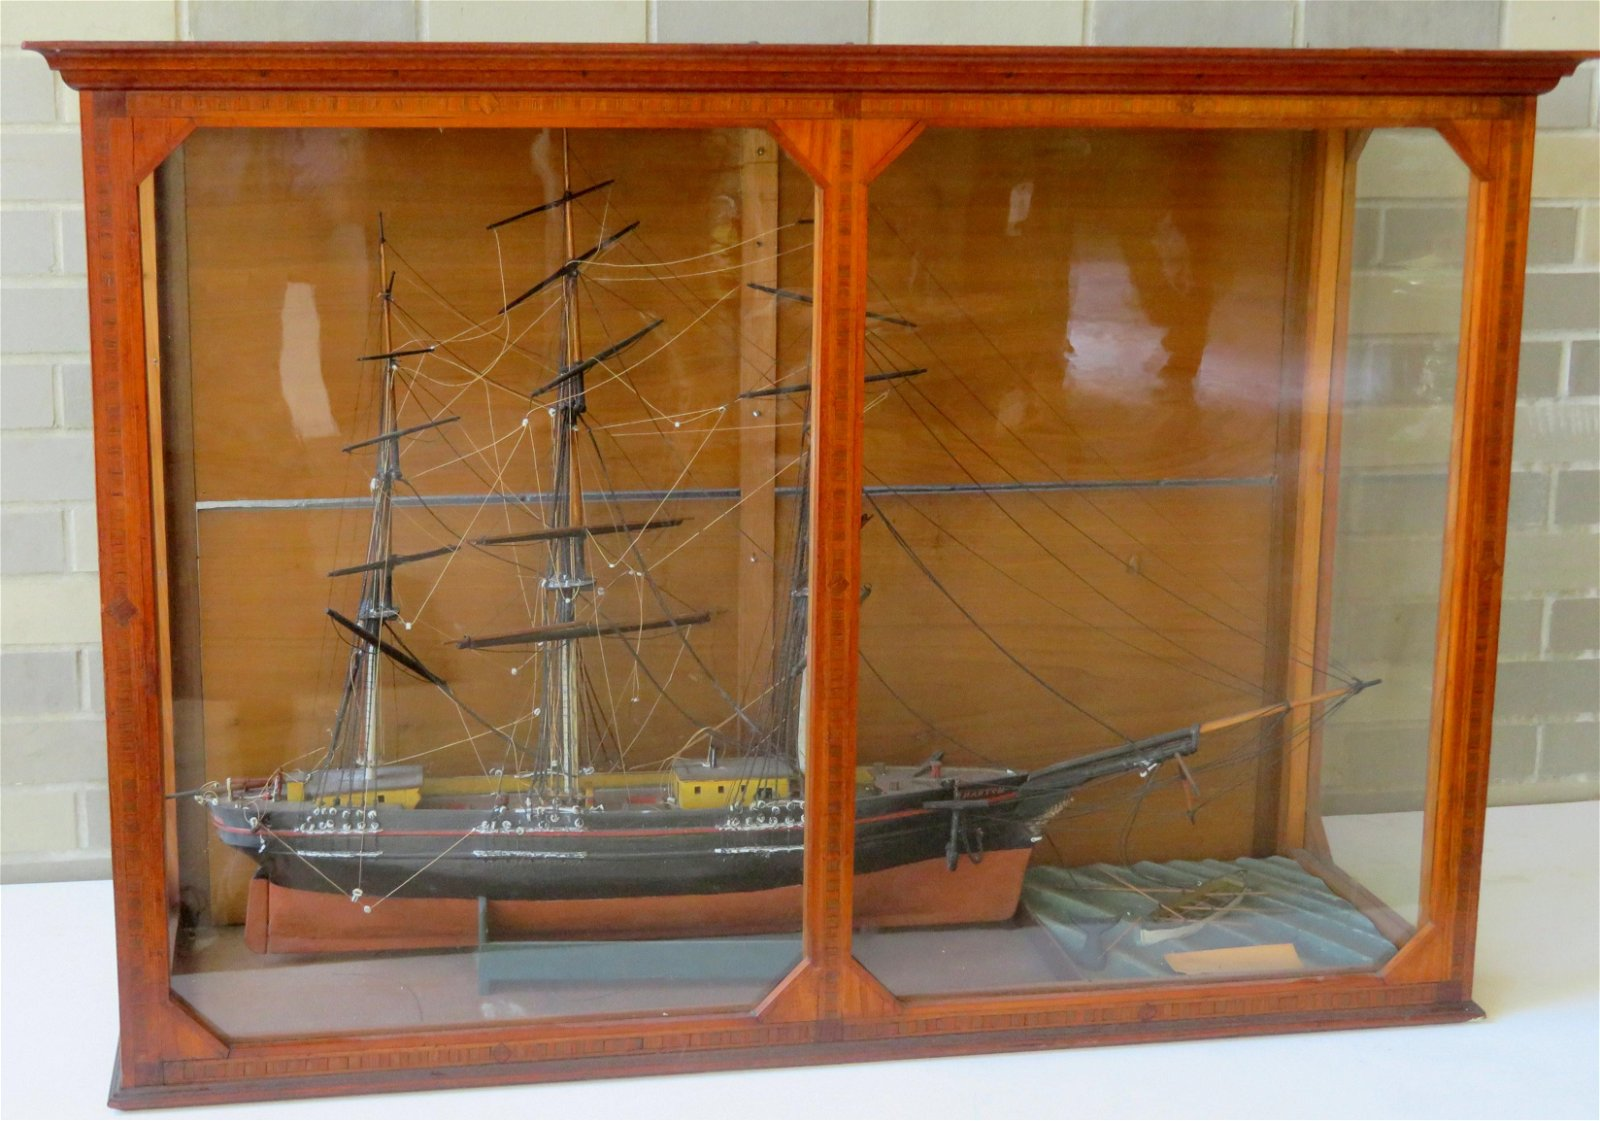 A glass encased 3 mast sailing ghost ship model marked